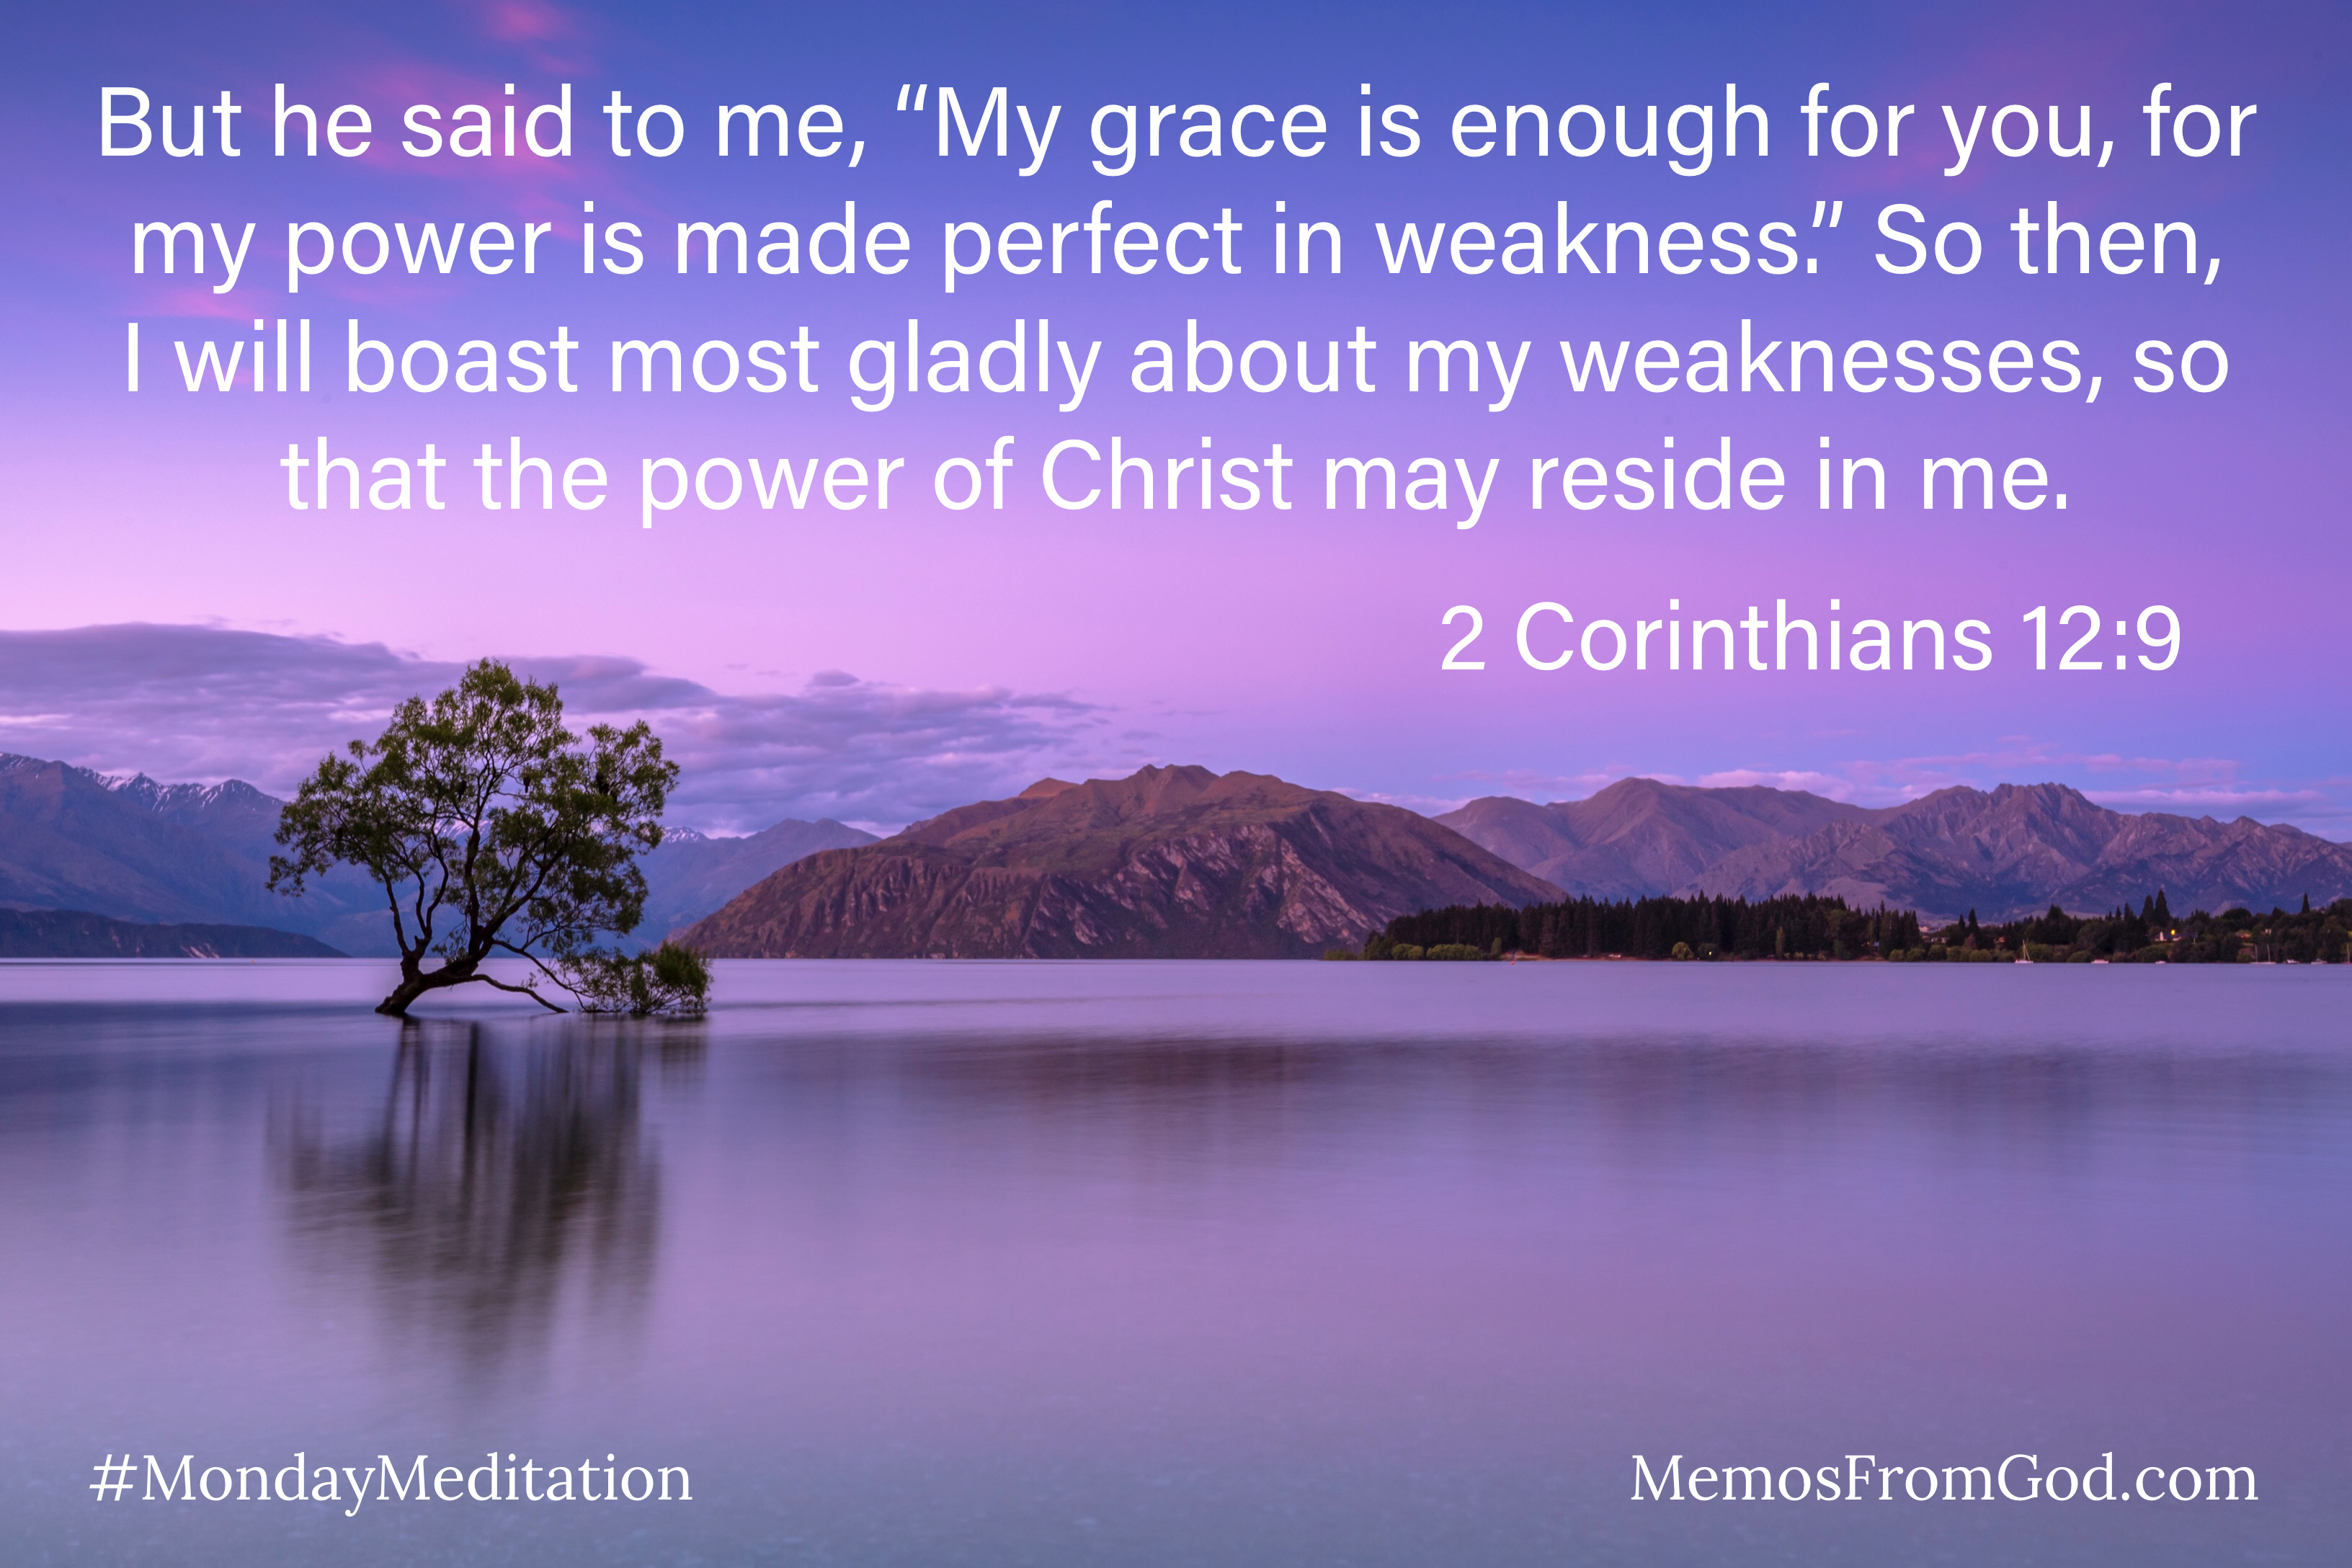 """A purple sky with pink clouds reflecting in a calm lake. There is a single tree growing in the middle of the lake and mountains in the background. Caption: But he said to me, """"My grace is enough for you, for my power is made perfect in weakness."""" So then, I will boast most gladly about my weaknesses, so that the power of Christ may reside in me. 2 Corinthians 12:9"""